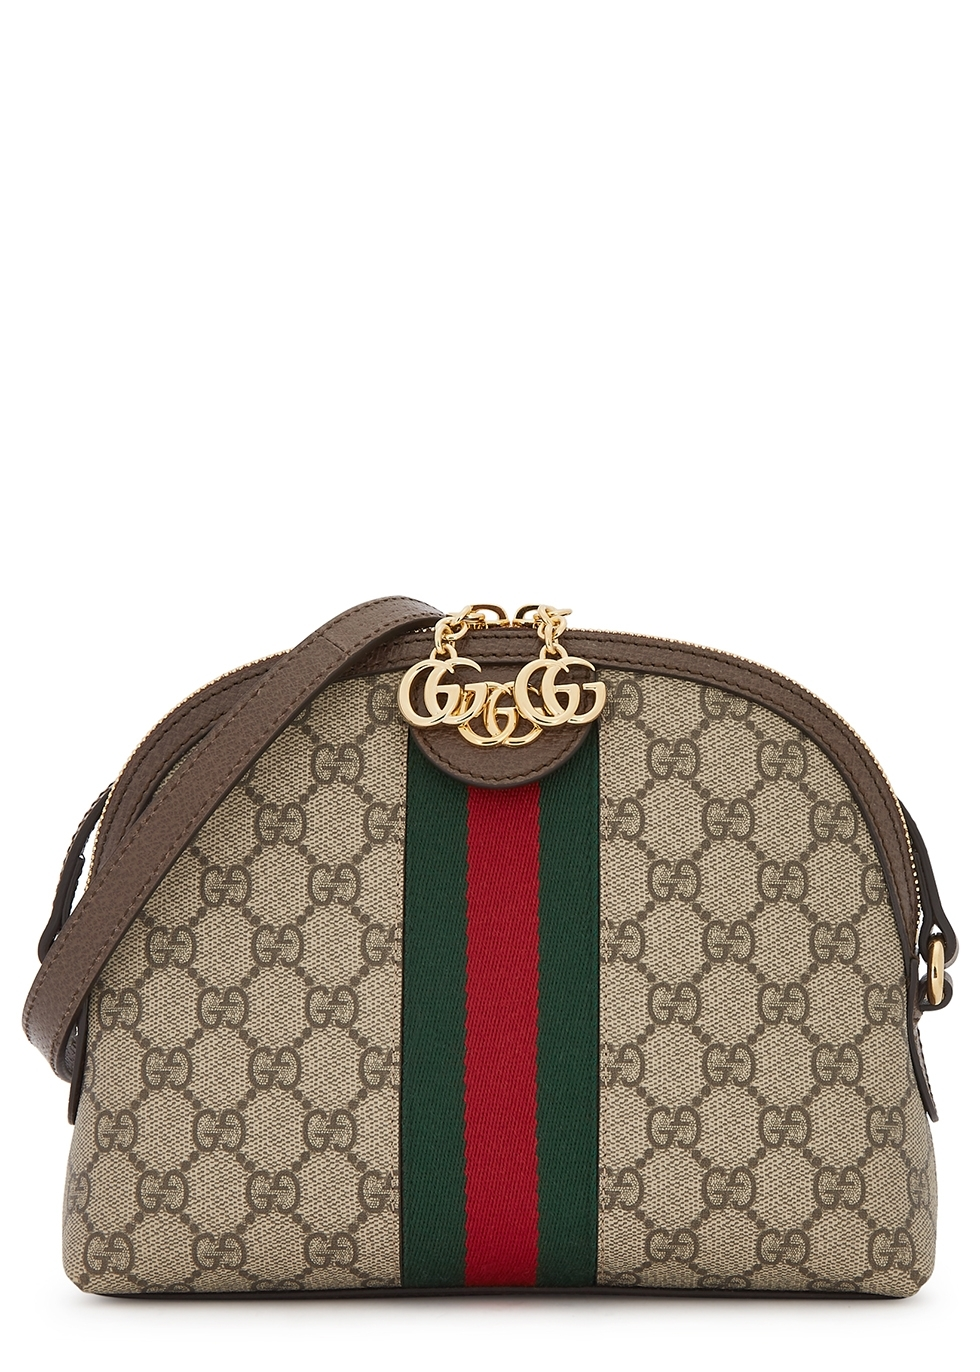 5c7895ad3091 Gucci Handbags - Harvey Nichols